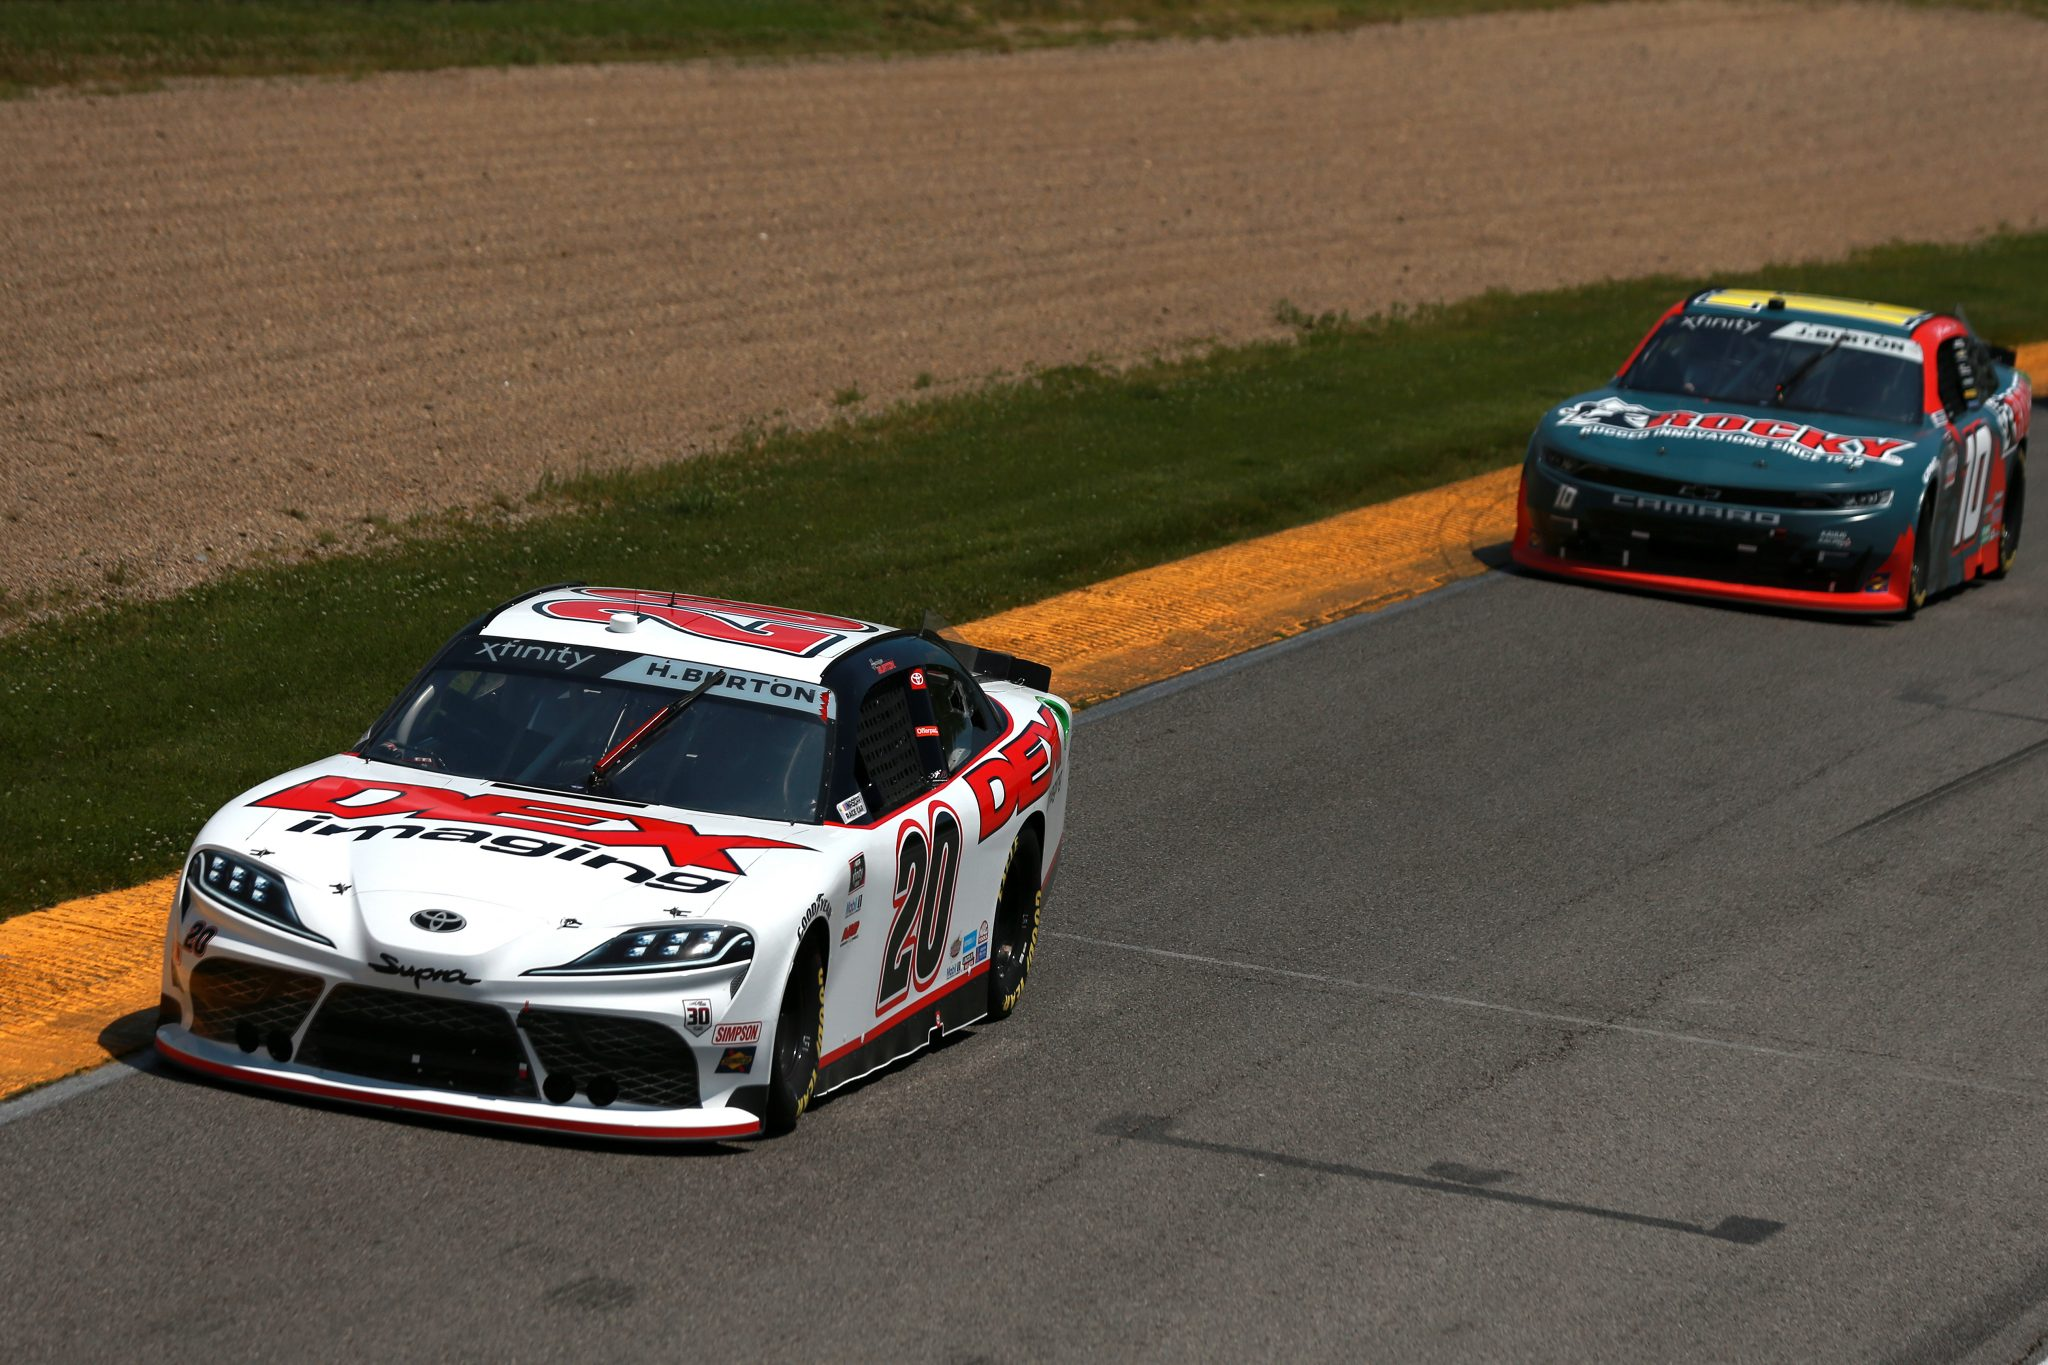 LEXINGTON, OHIO - JUNE 05: Harrison Burton, driver of the #20 DEX Imaging Toyota, and Jeb Burton, driver of the #10 Rocky Boots Chevrolet, race during the NASCAR Xfinity Series B&L Transport 170 at Mid-Ohio Sports Car Course on June 05, 2021 in Lexington, Ohio. (Photo by Sean Gardner/Getty Images) | Getty Images